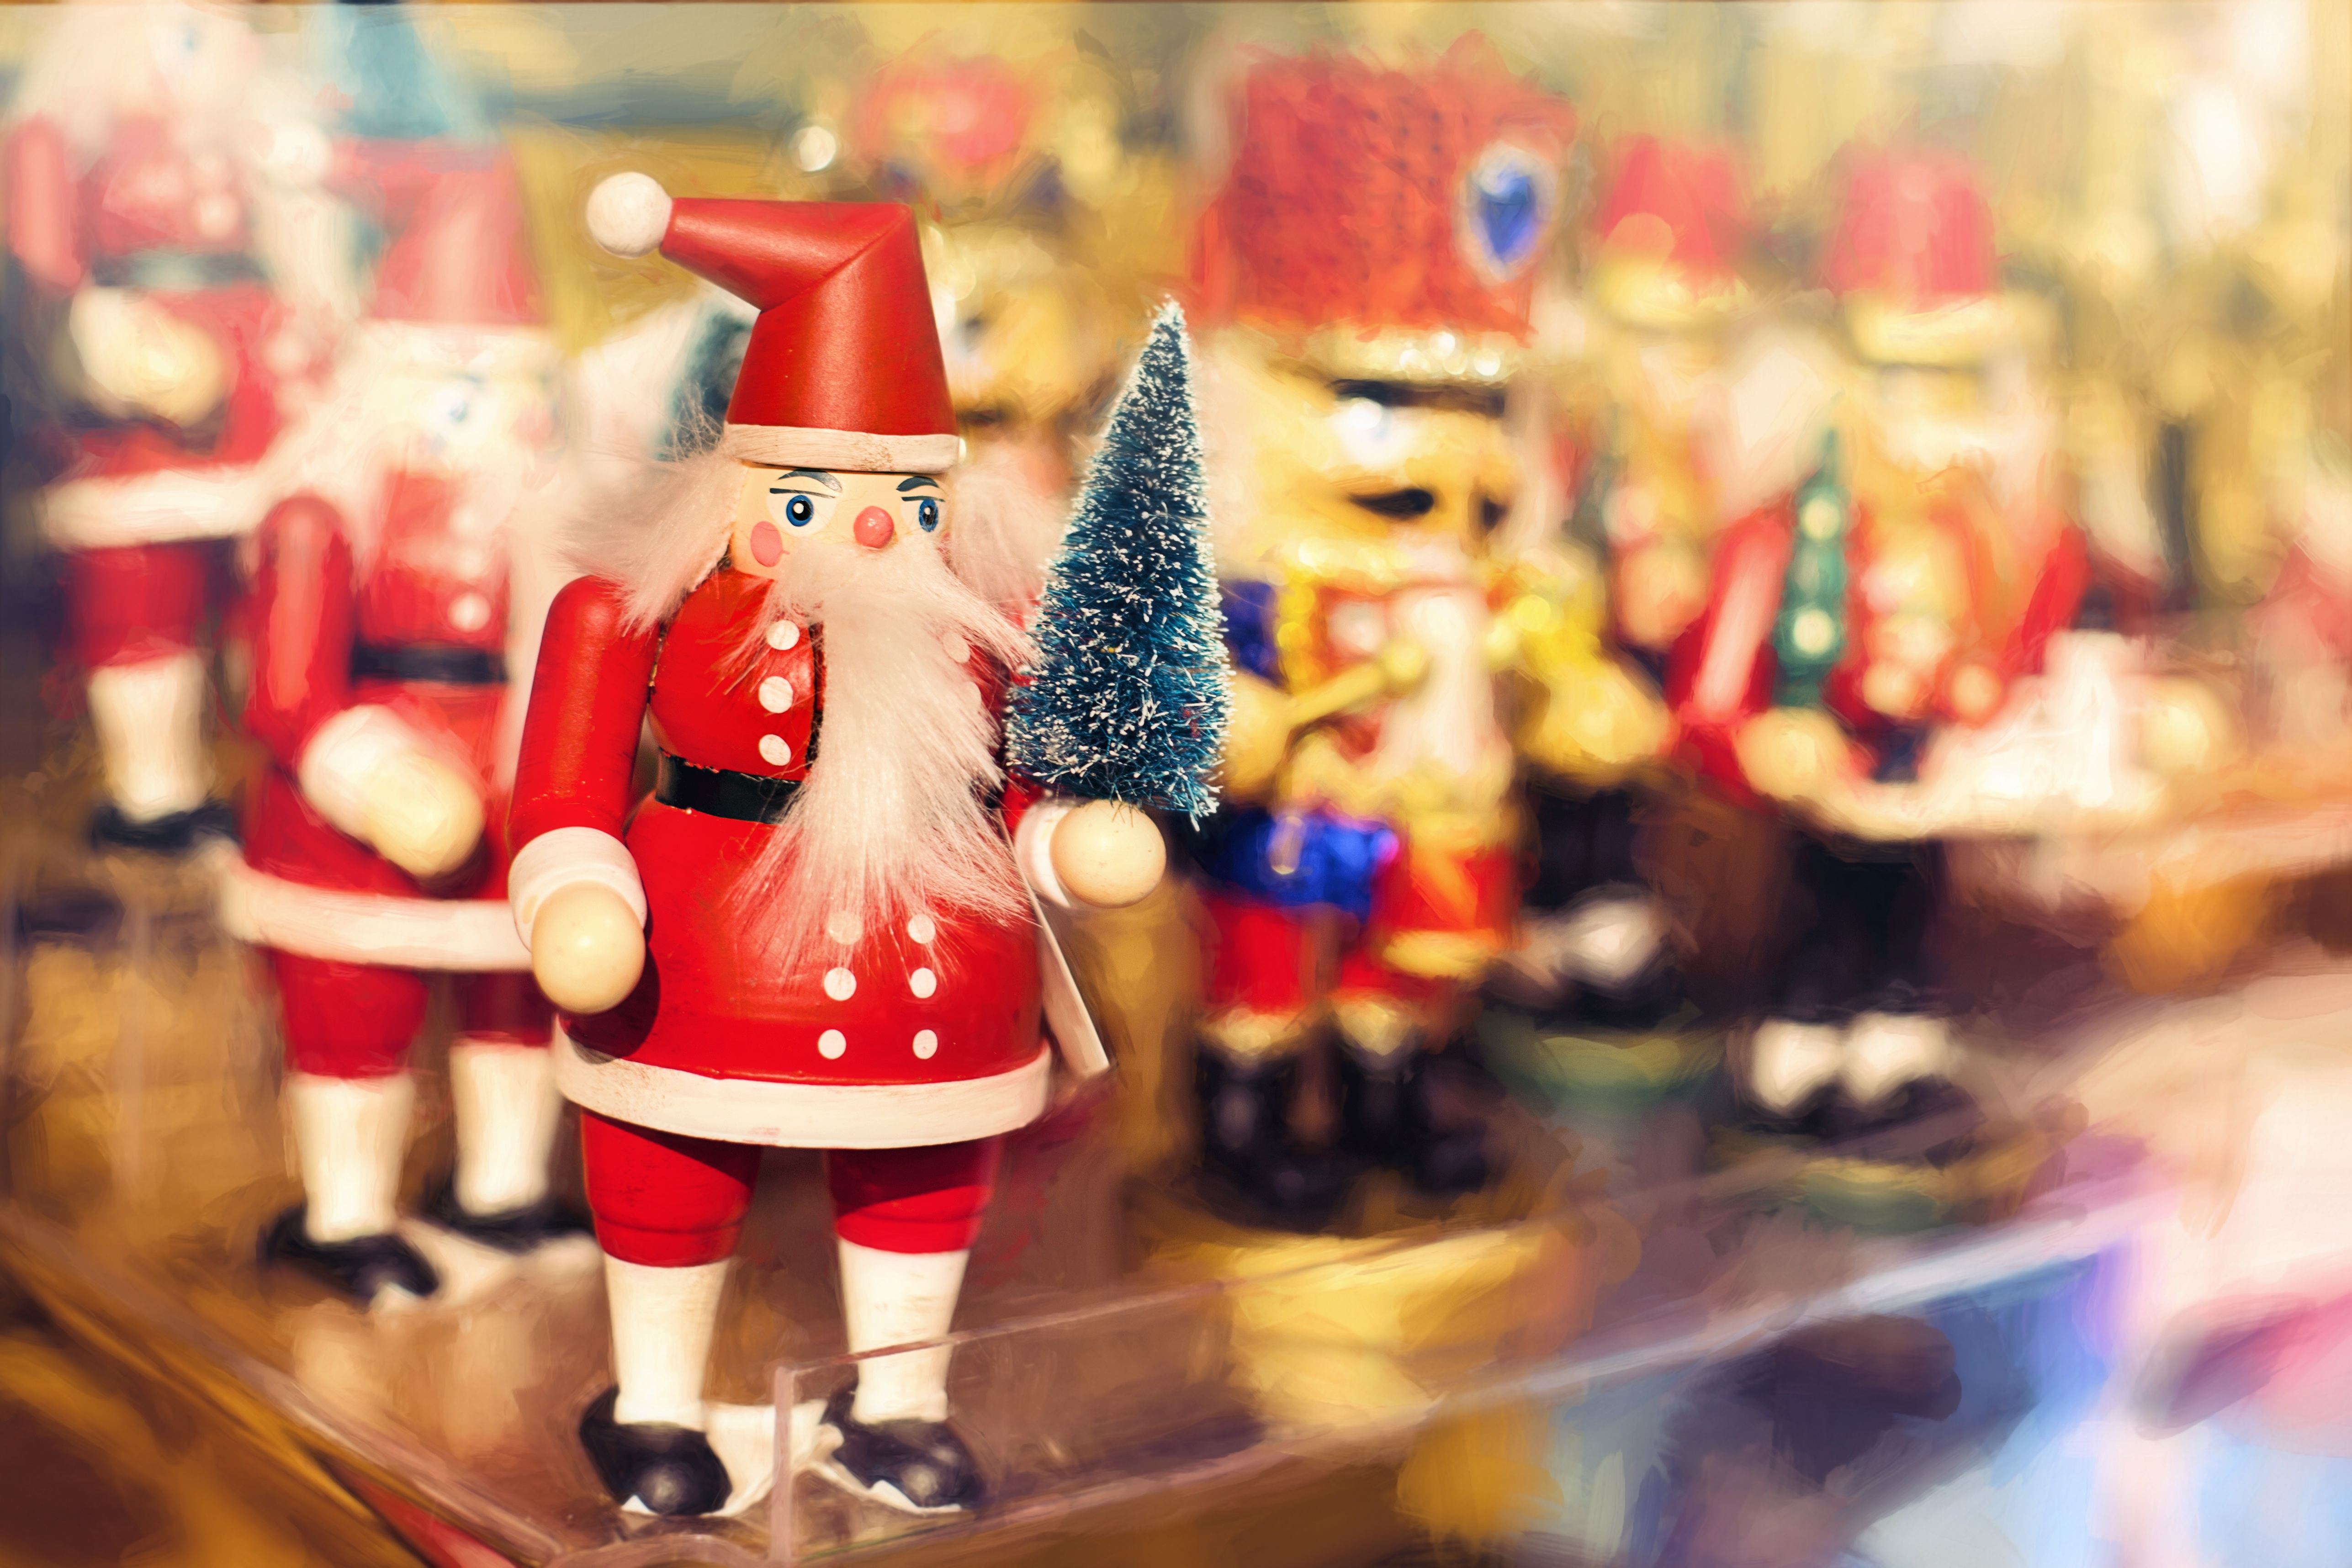 129961 download wallpaper Christmas, Holidays, New Year, Santa Claus screensavers and pictures for free